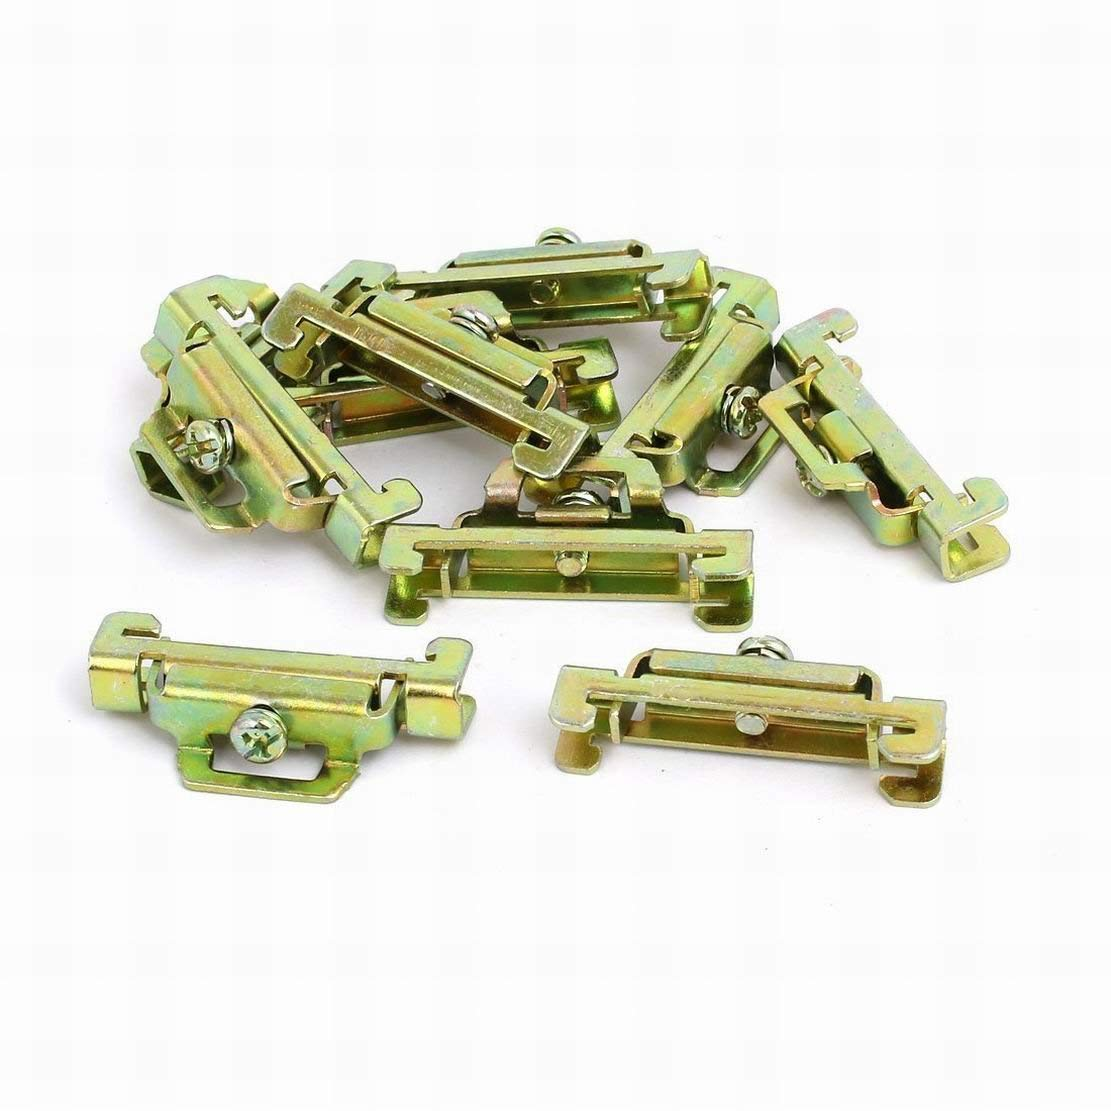 Ugtell 10 Pcs 35mm Width DIN Guide Rail Buckle Fixed Clamp Bronze Tone 44mmx8mmx22mm